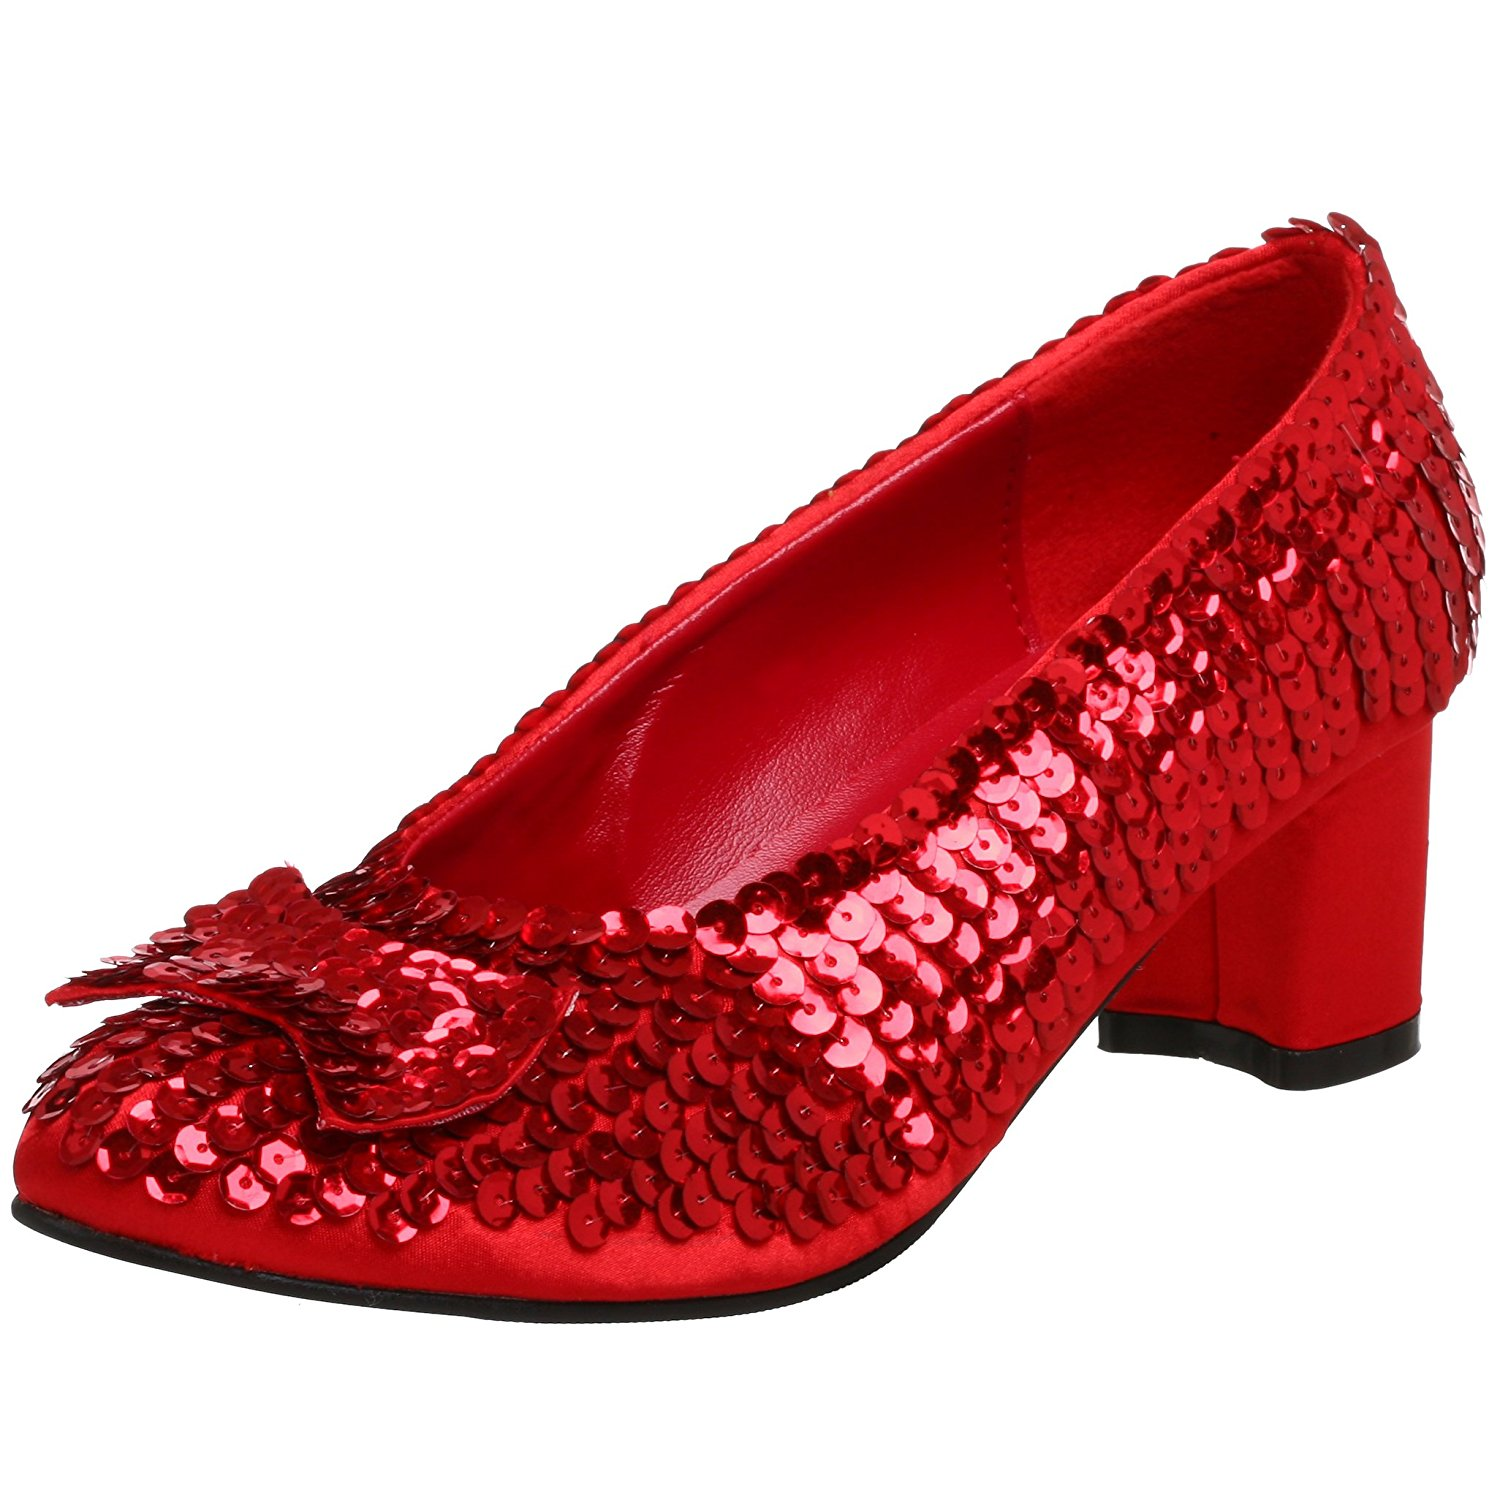 Red Heels For Kids hb9DEMx2